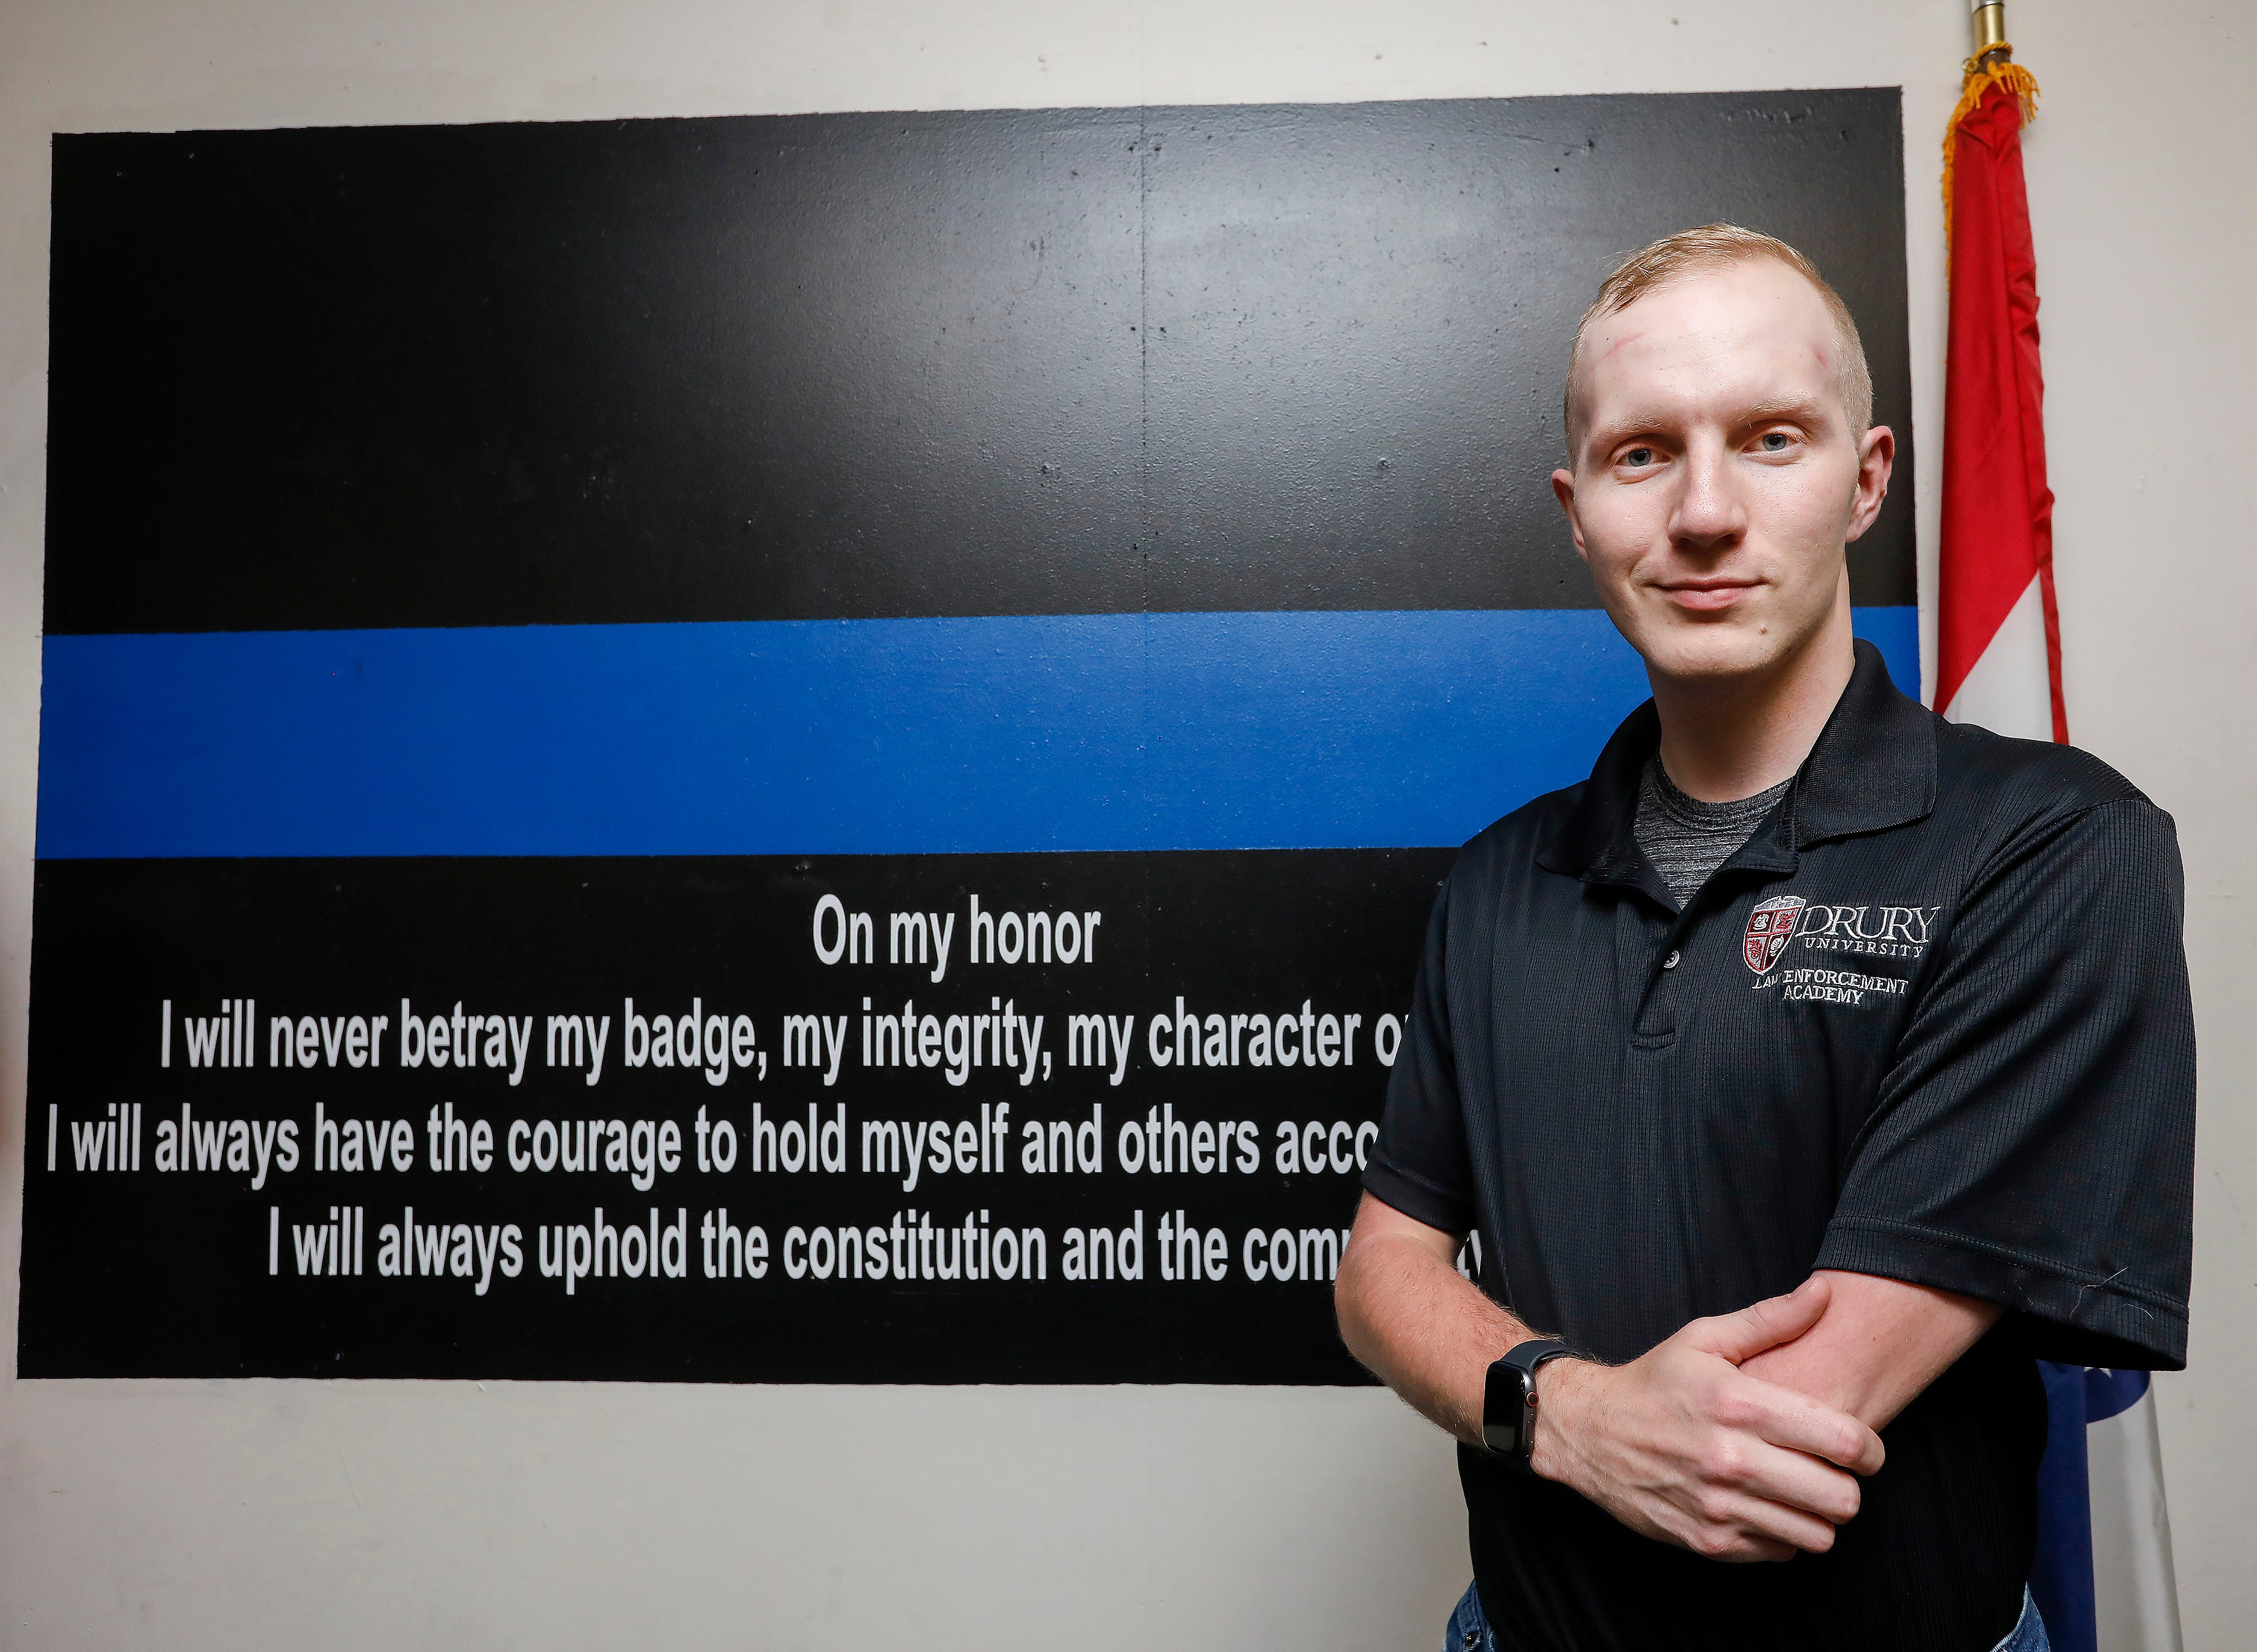 Joe Presley, who was born with only one arm, will graduate from the Drury University law enforcement academy.